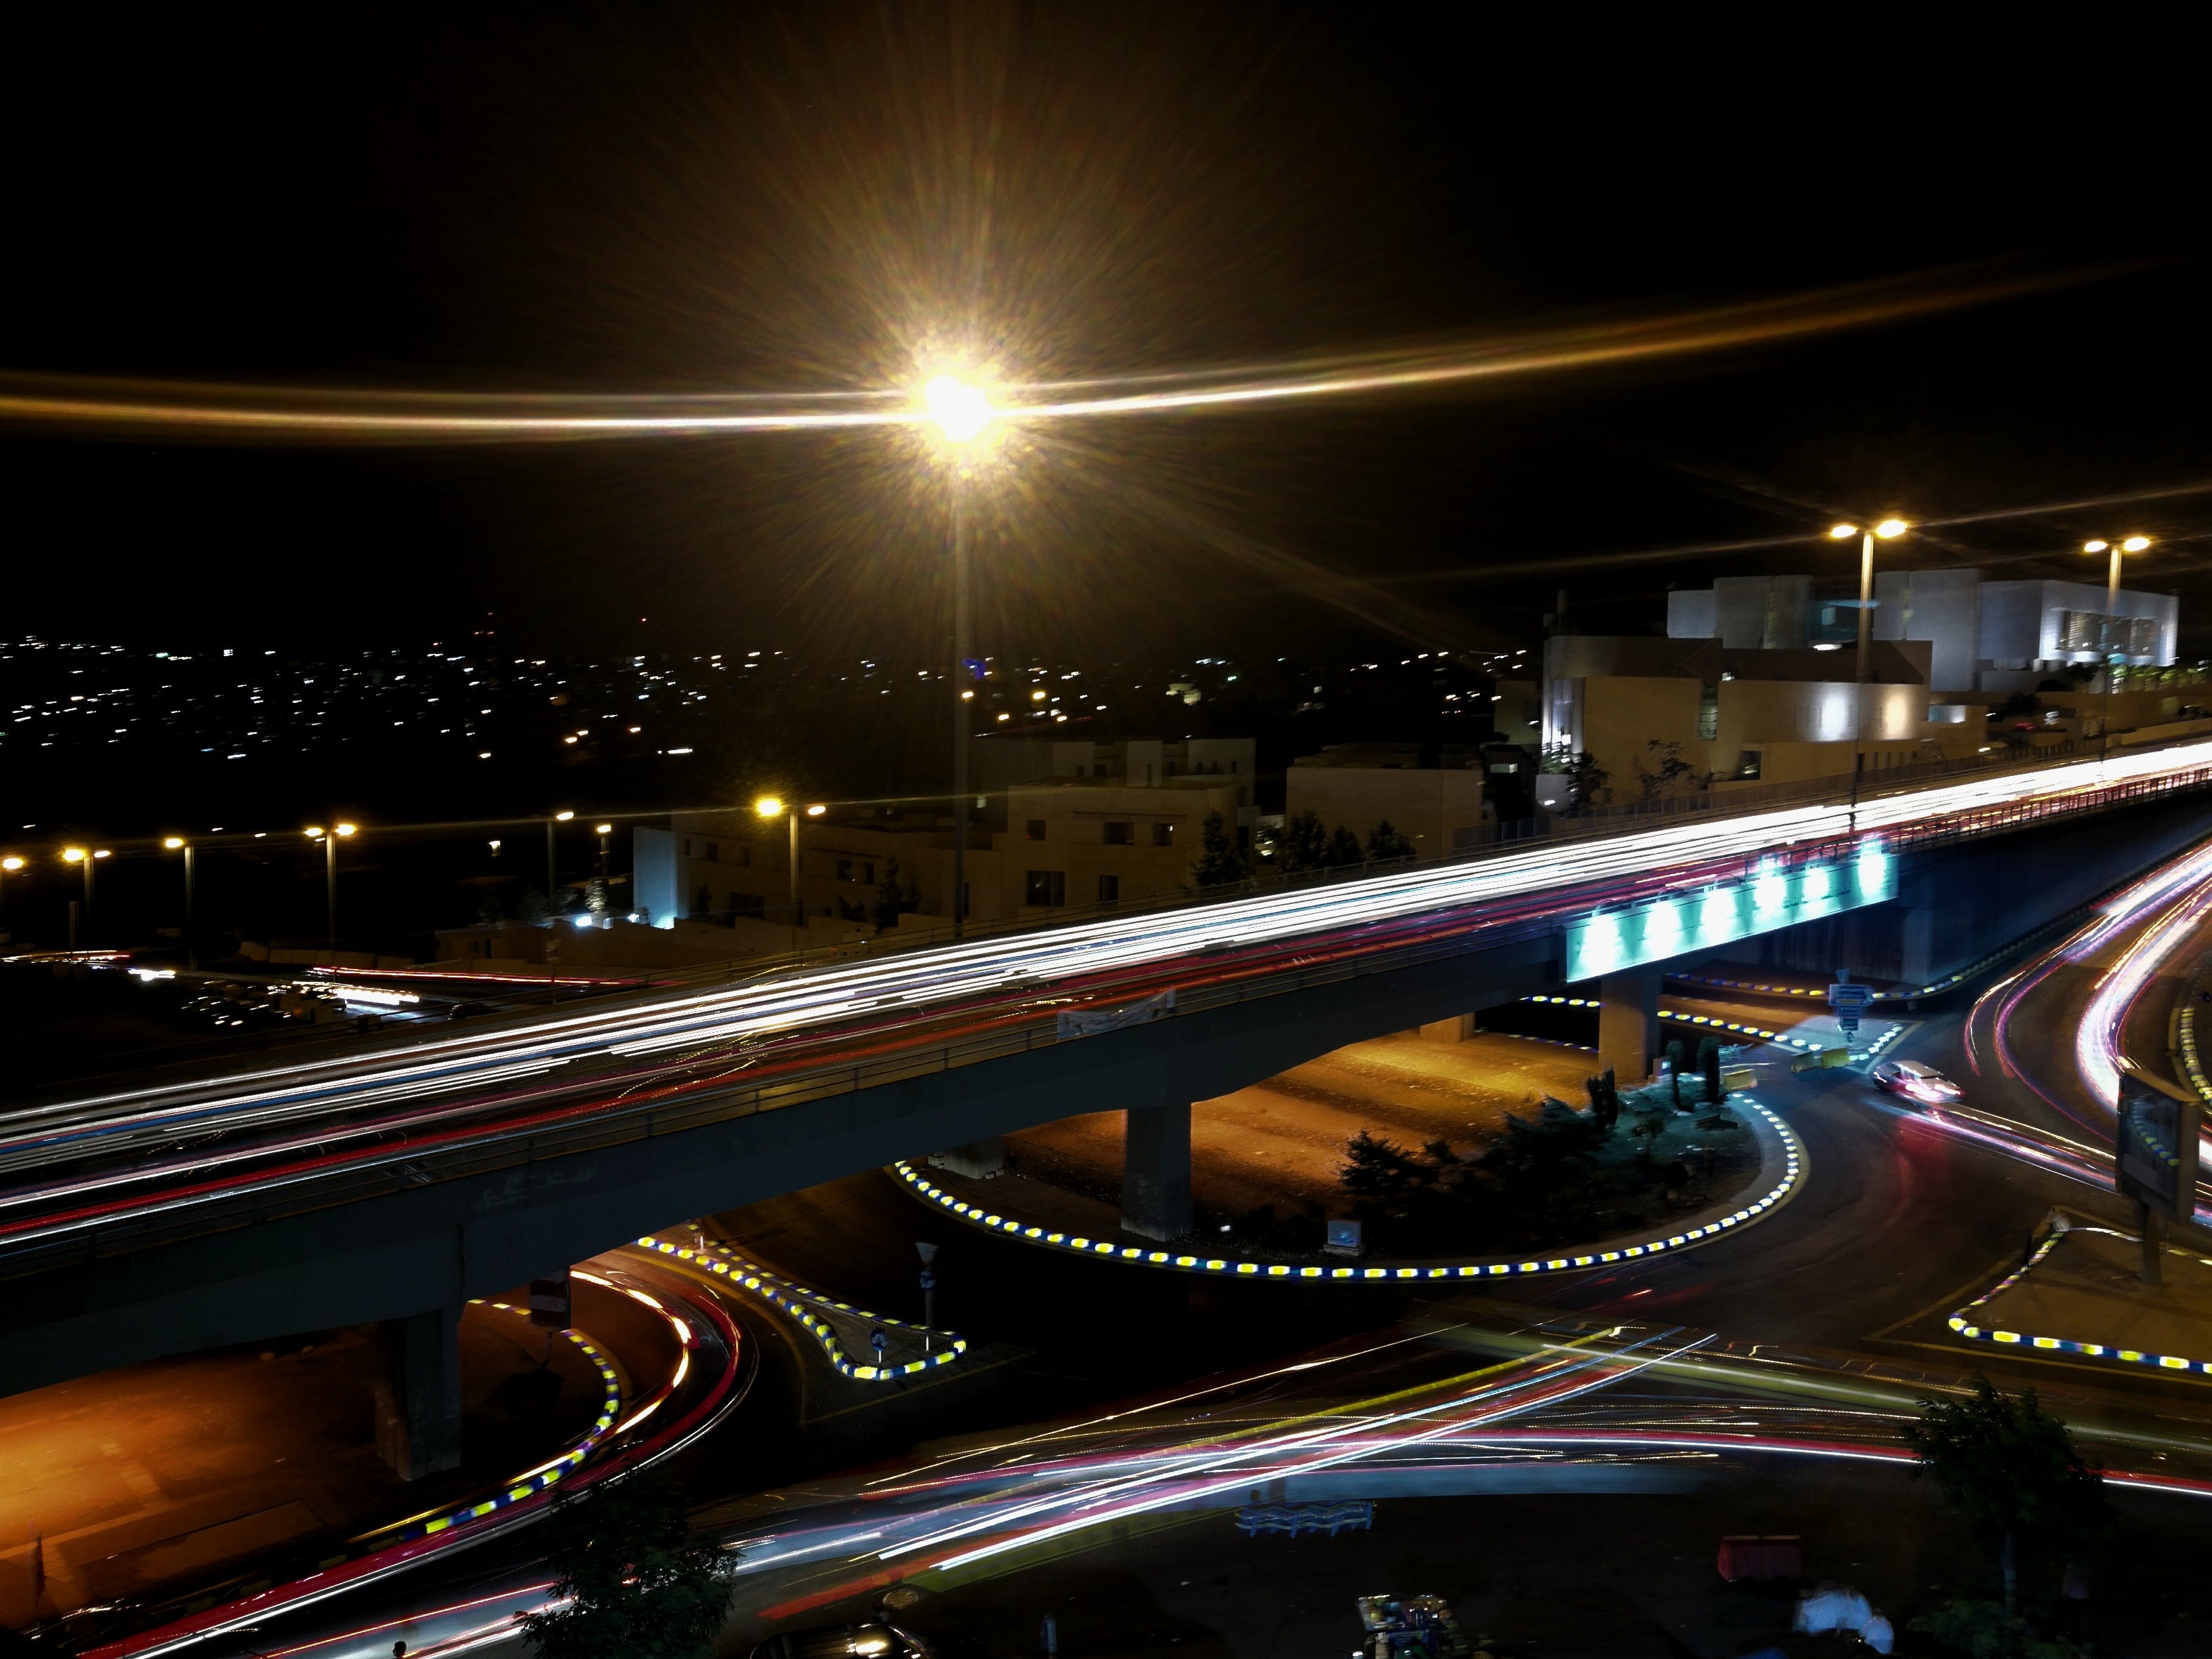 Free stock photo of Light track, night shot